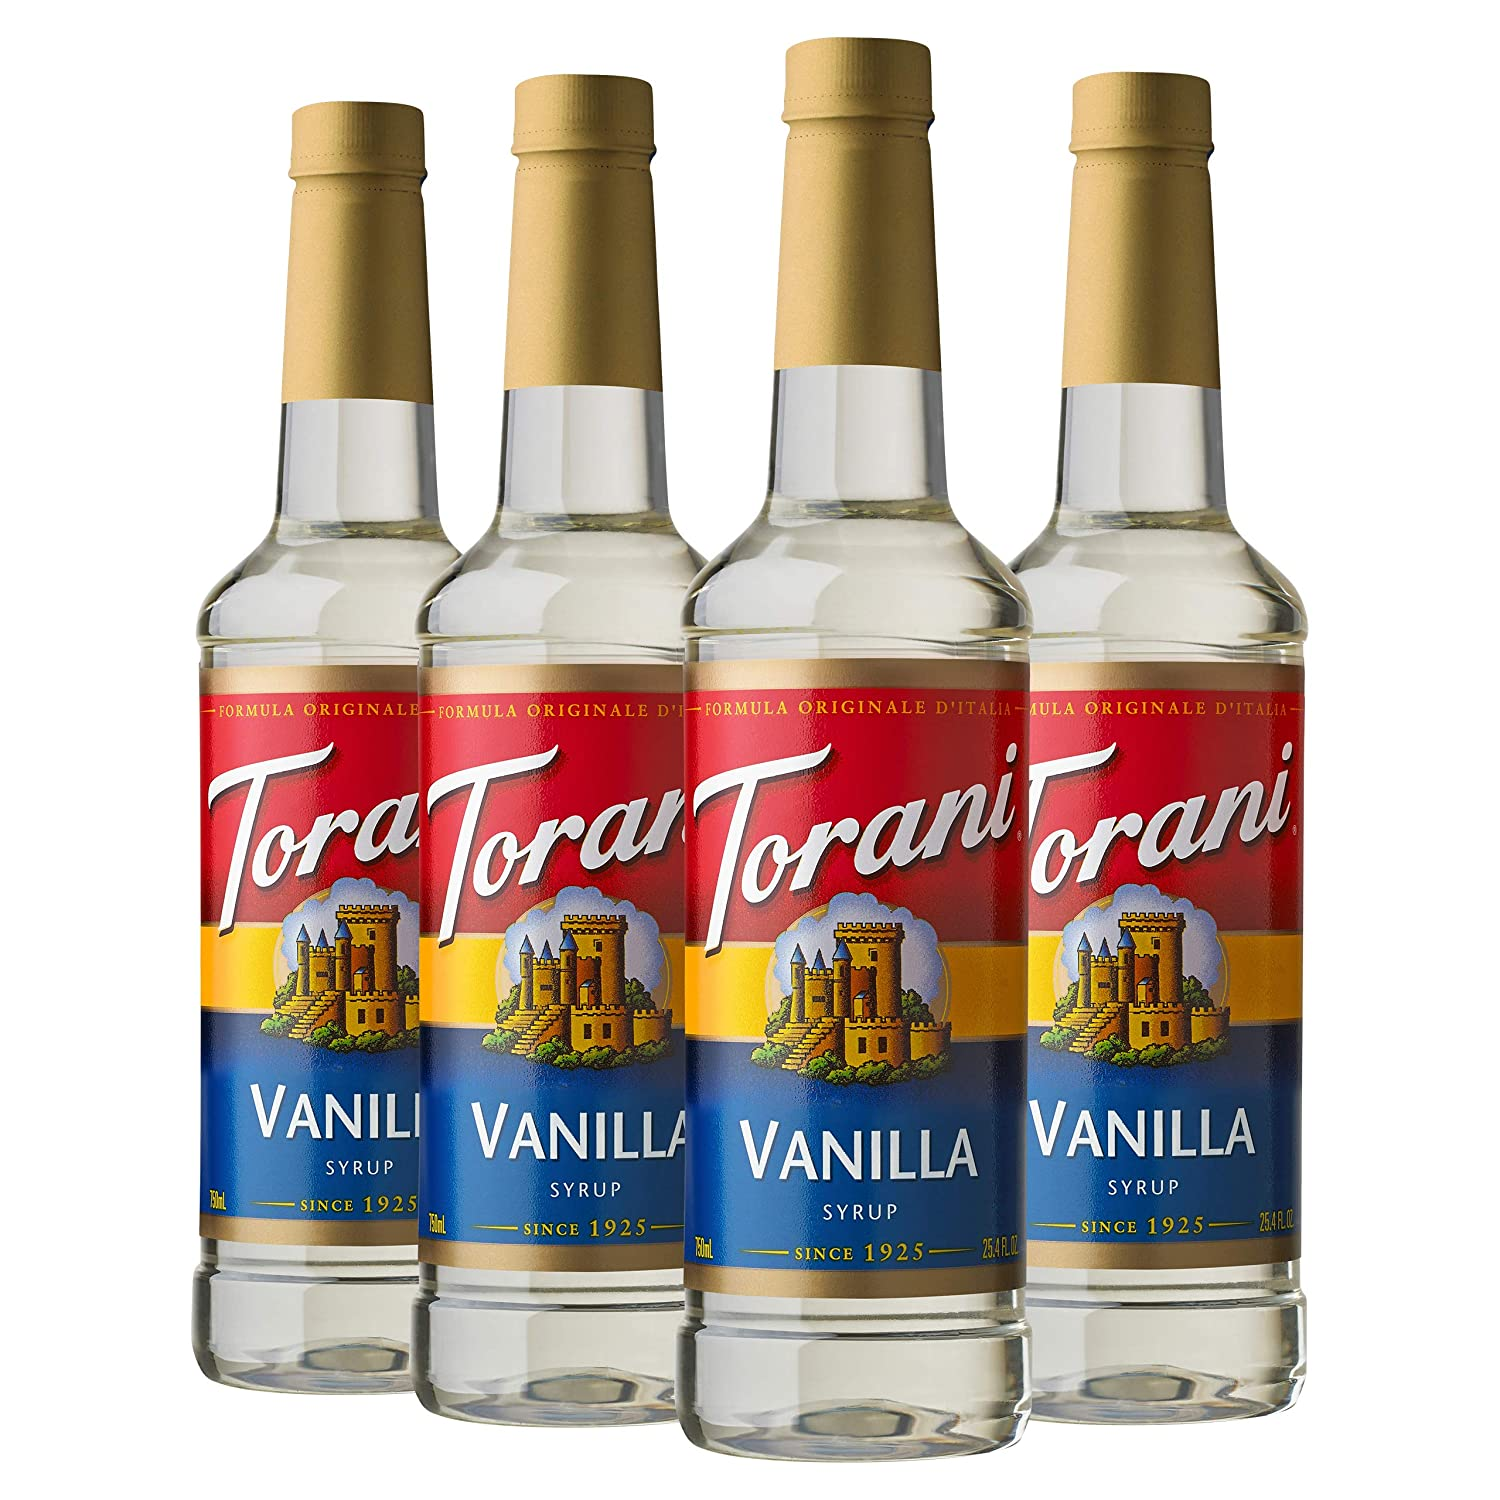 Torani Syrup, Vanilla, 25.4 Ounces (Pack of 4)